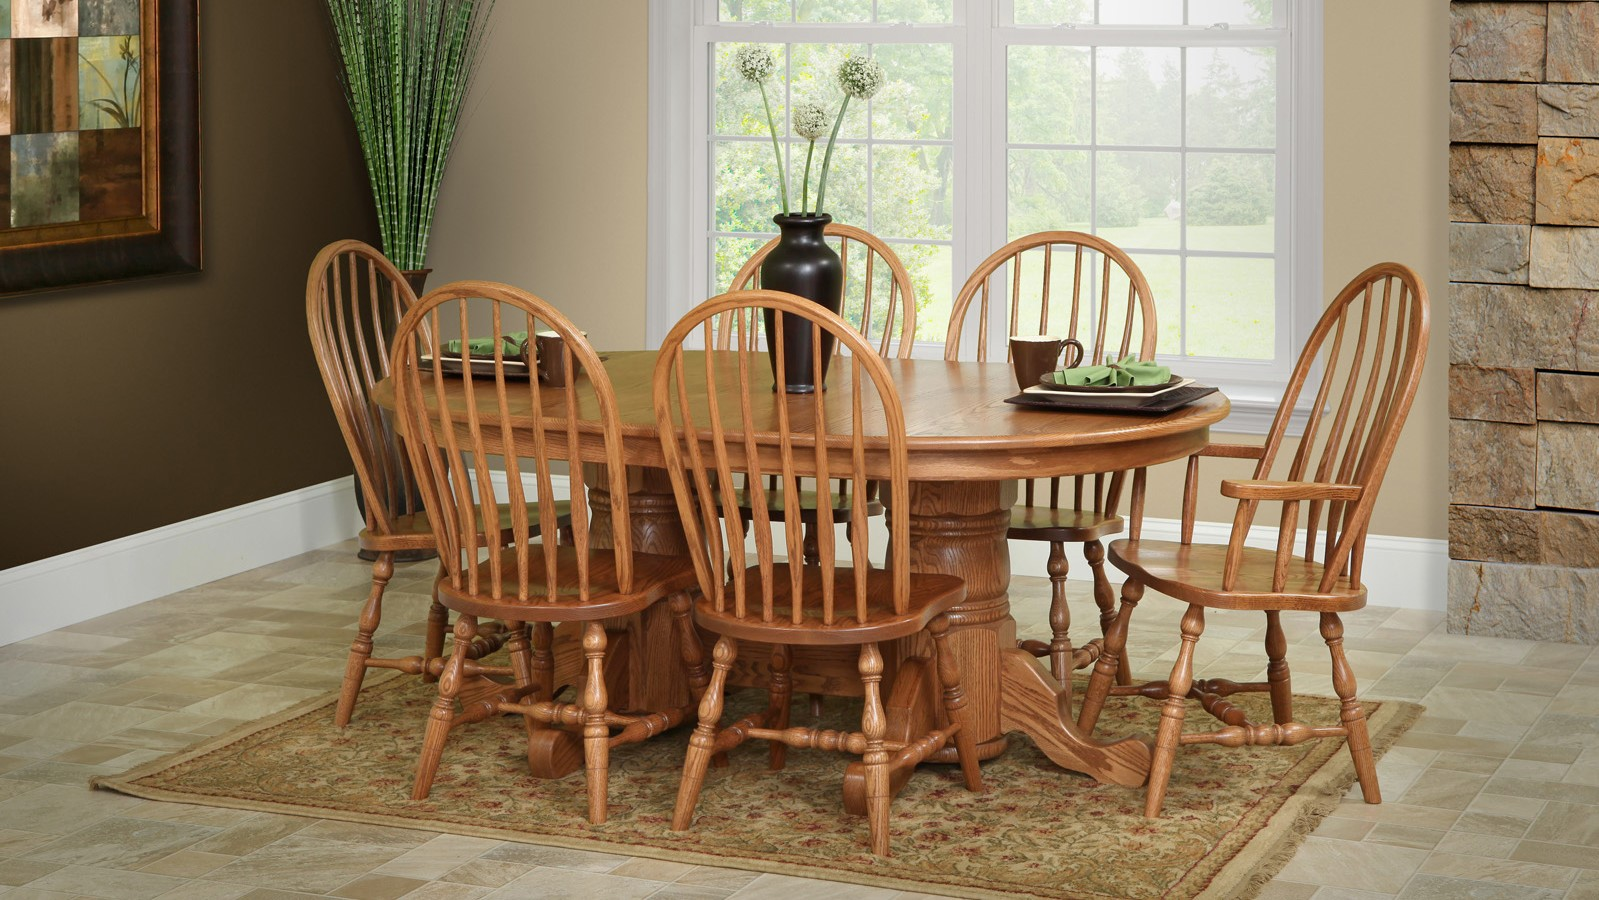 Dining room scene with wooden furniture